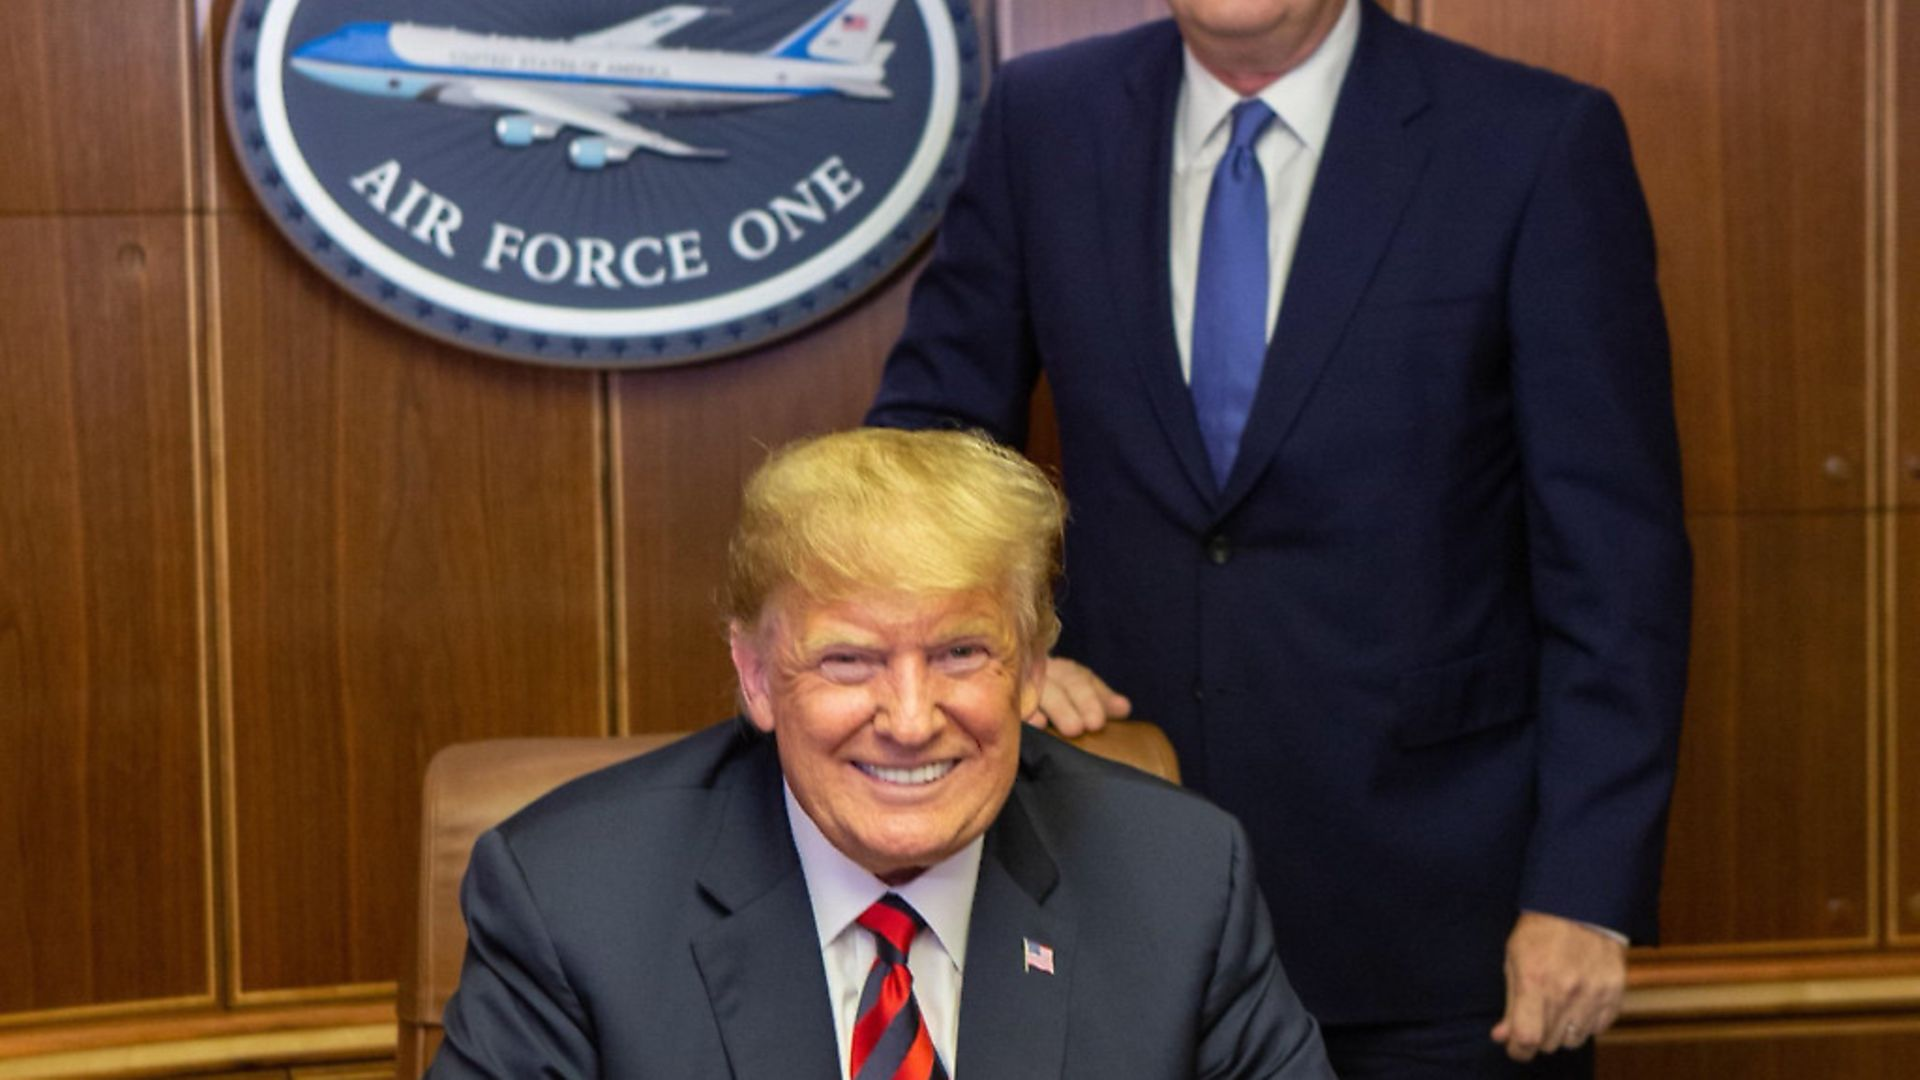 Piers Morgan with Donald Trump on Air Force One. Picture: Contributed - Credit: Archant